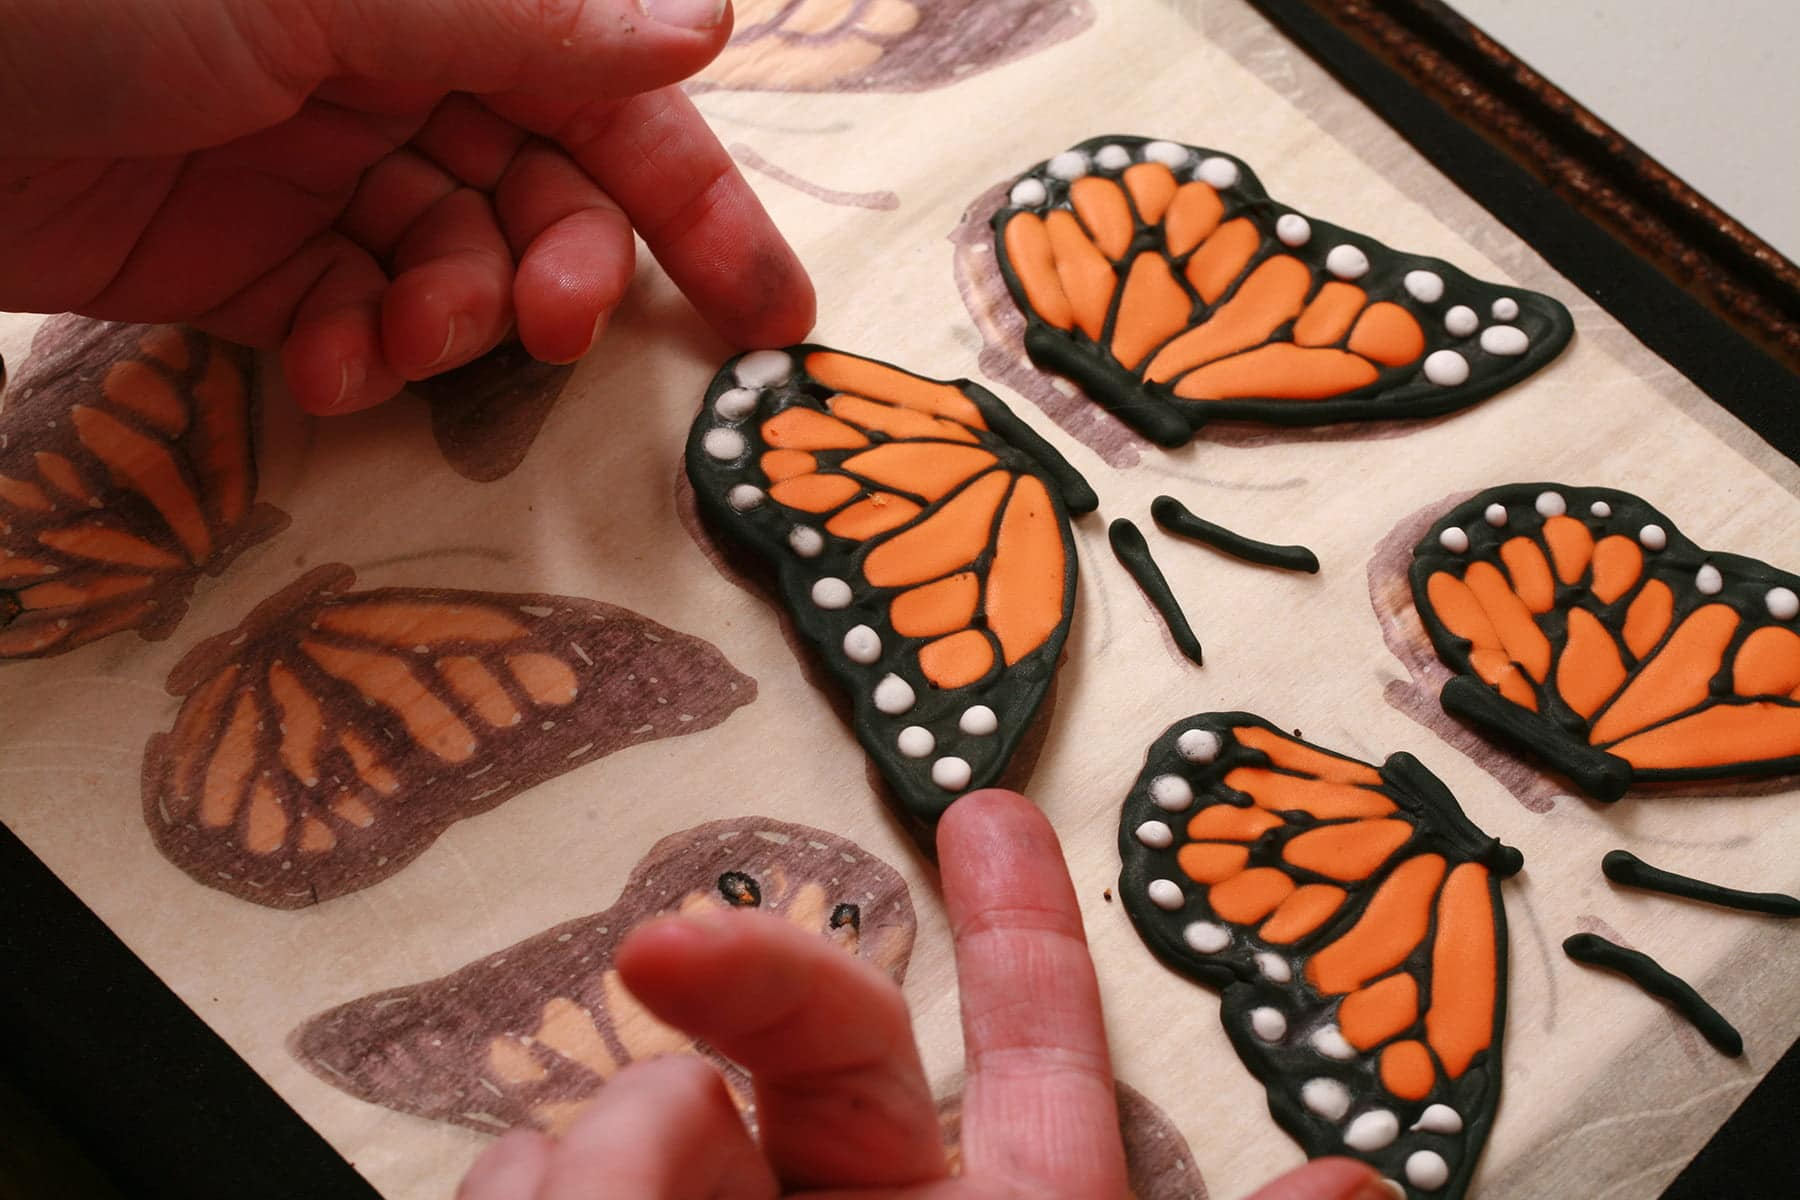 Two fingers gently lift a hardened frosting butterfly wing from the parchment lined baking sheet.